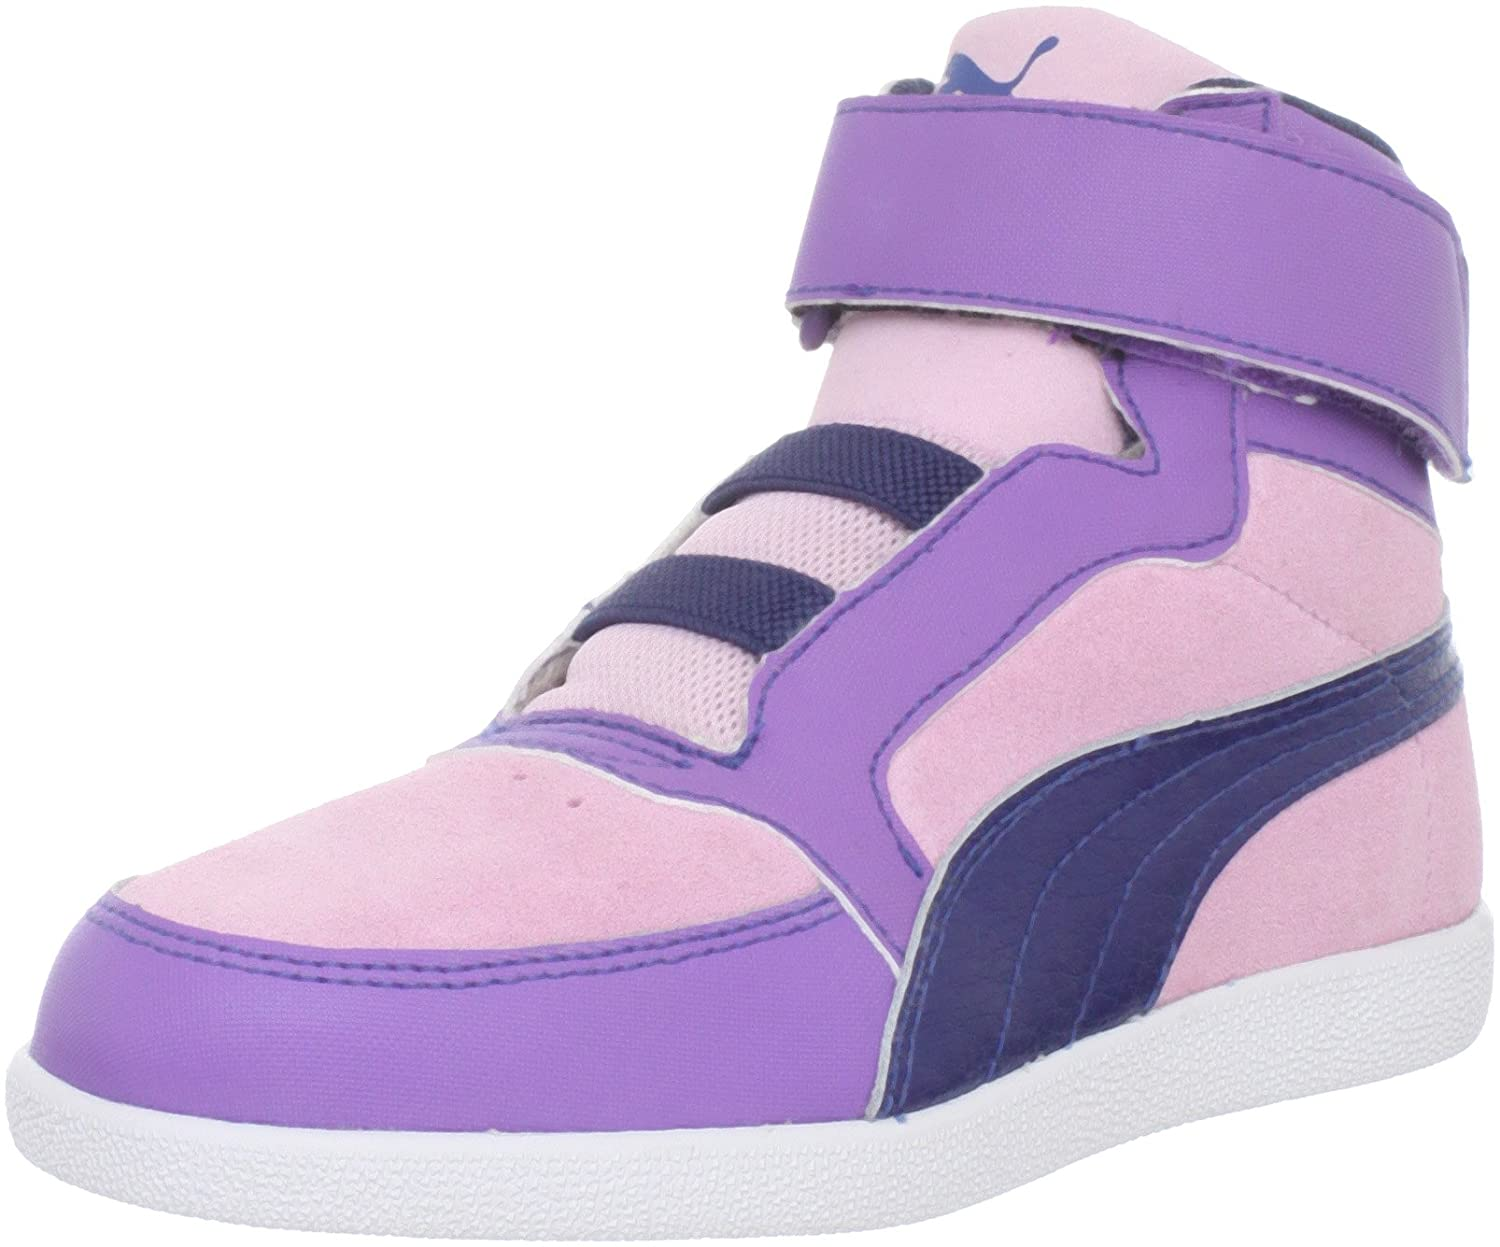 the gallery for gt hip hop dance shoes for girls